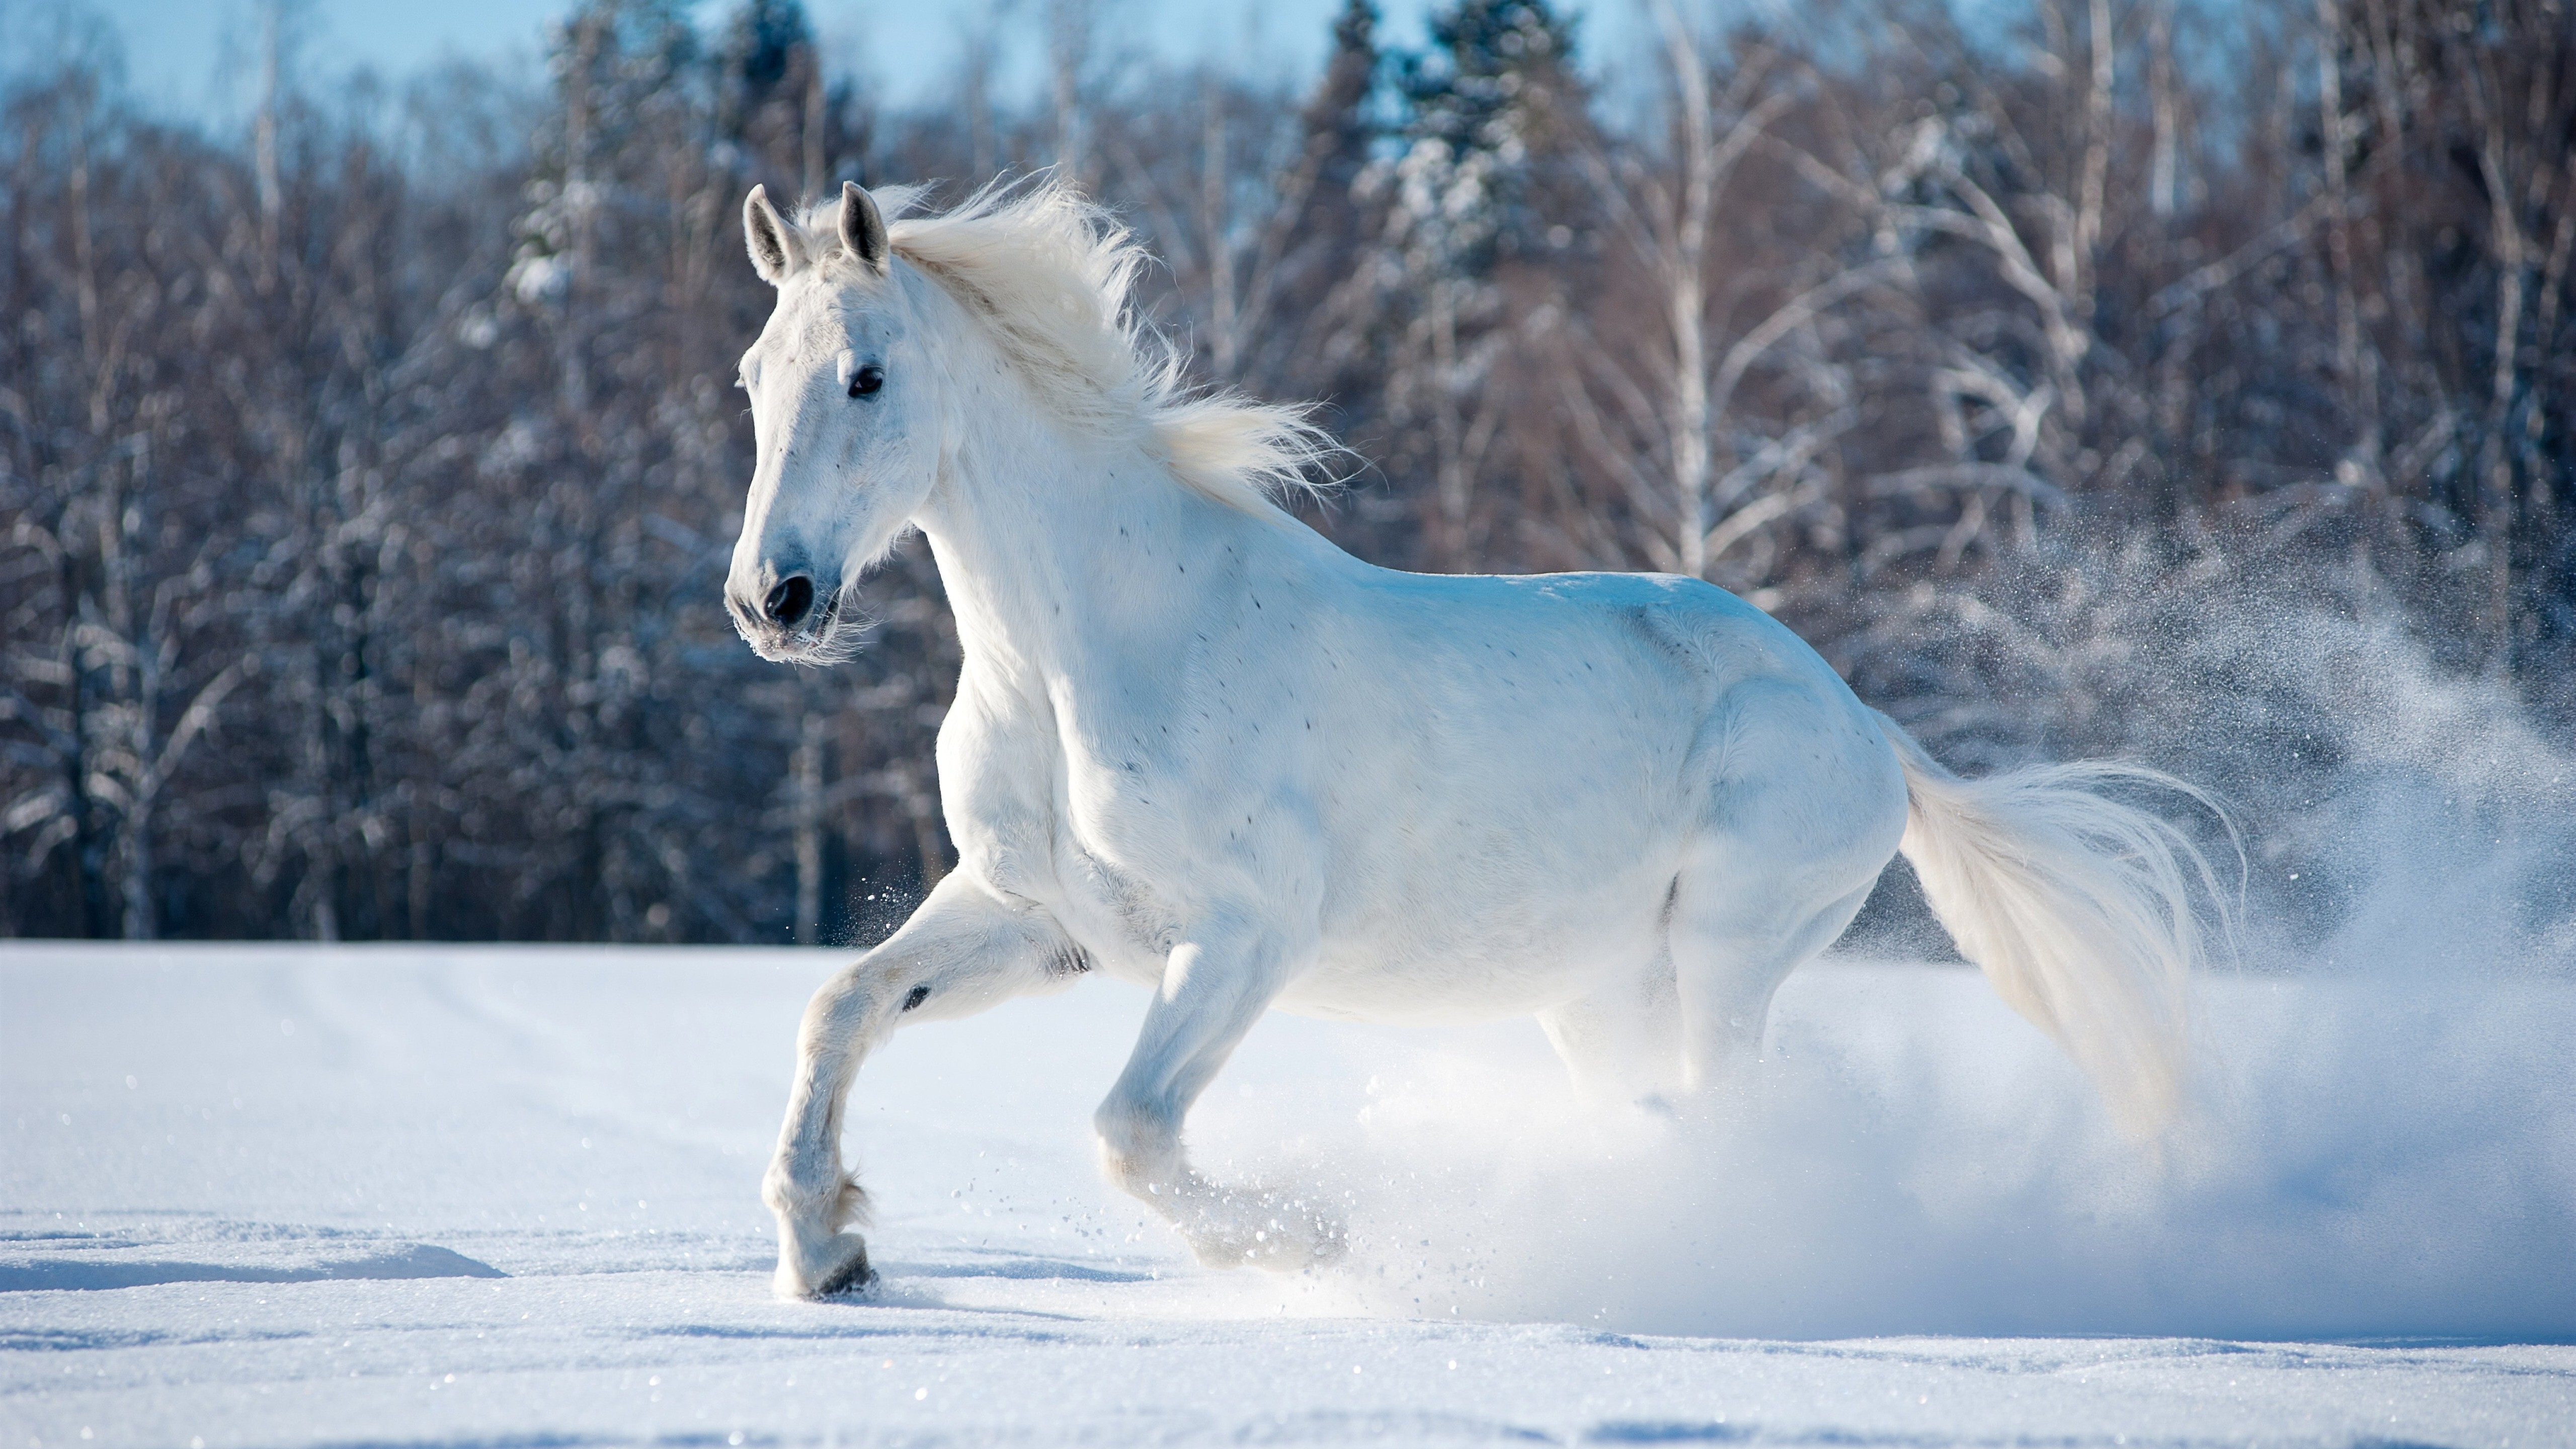 White Horse Running In Snow 5k Wallpaper Hd Wallpapers